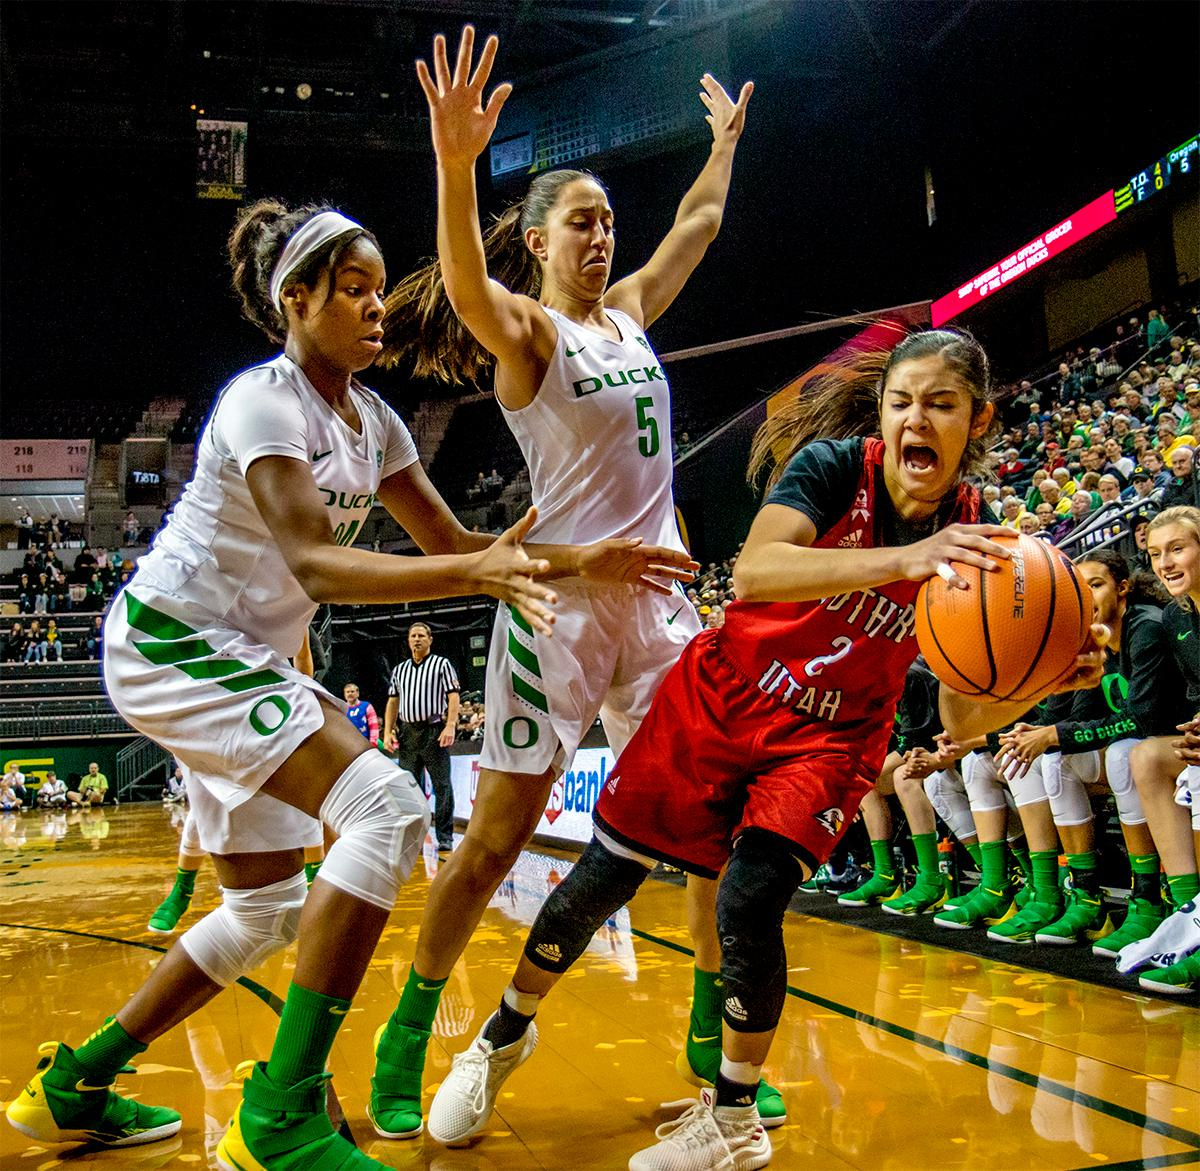 the thunderbird's Rebecca Cardenas (#2) takes a fall out of bounds. The University of Oregon Ducks women basketball team defeated the Southern Utah Thunderbirds 98-38 in Matthew Knight Arena Saturday afternoon. The Ducks had four players in double-digits: Ruthy Hebard with 13; Mallory McGwire with 10; Lexi Bando with 17 which included four three-pointers; and Sabrina Ionescu with 16 points. The Ducks overwhelmed the Thunderbirds, shooting 50% in field goals to South Utah's 26.8%, 53.8% in three-pointers to 12.5%, and 85.7% in free throws to 50%. The Ducks, with an overall record of 8-1, and coming into this game ranked 9th, will play their next home game against Ole Miss on December 17. Photo by August Frank, Oregon News Lab